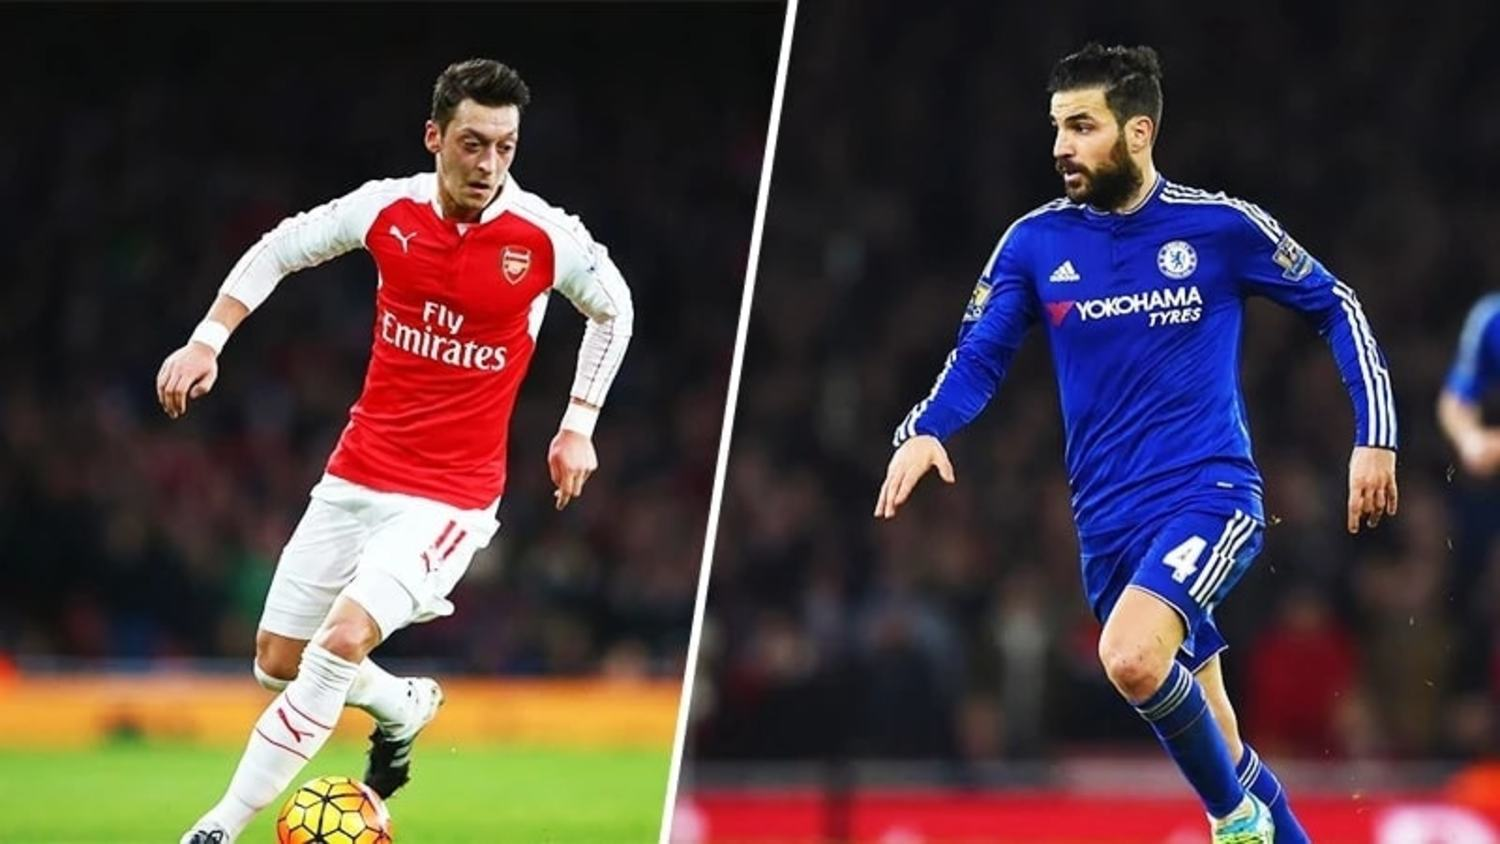 Ozil & Fabregas first players to pass 1000 passes in the Premier League